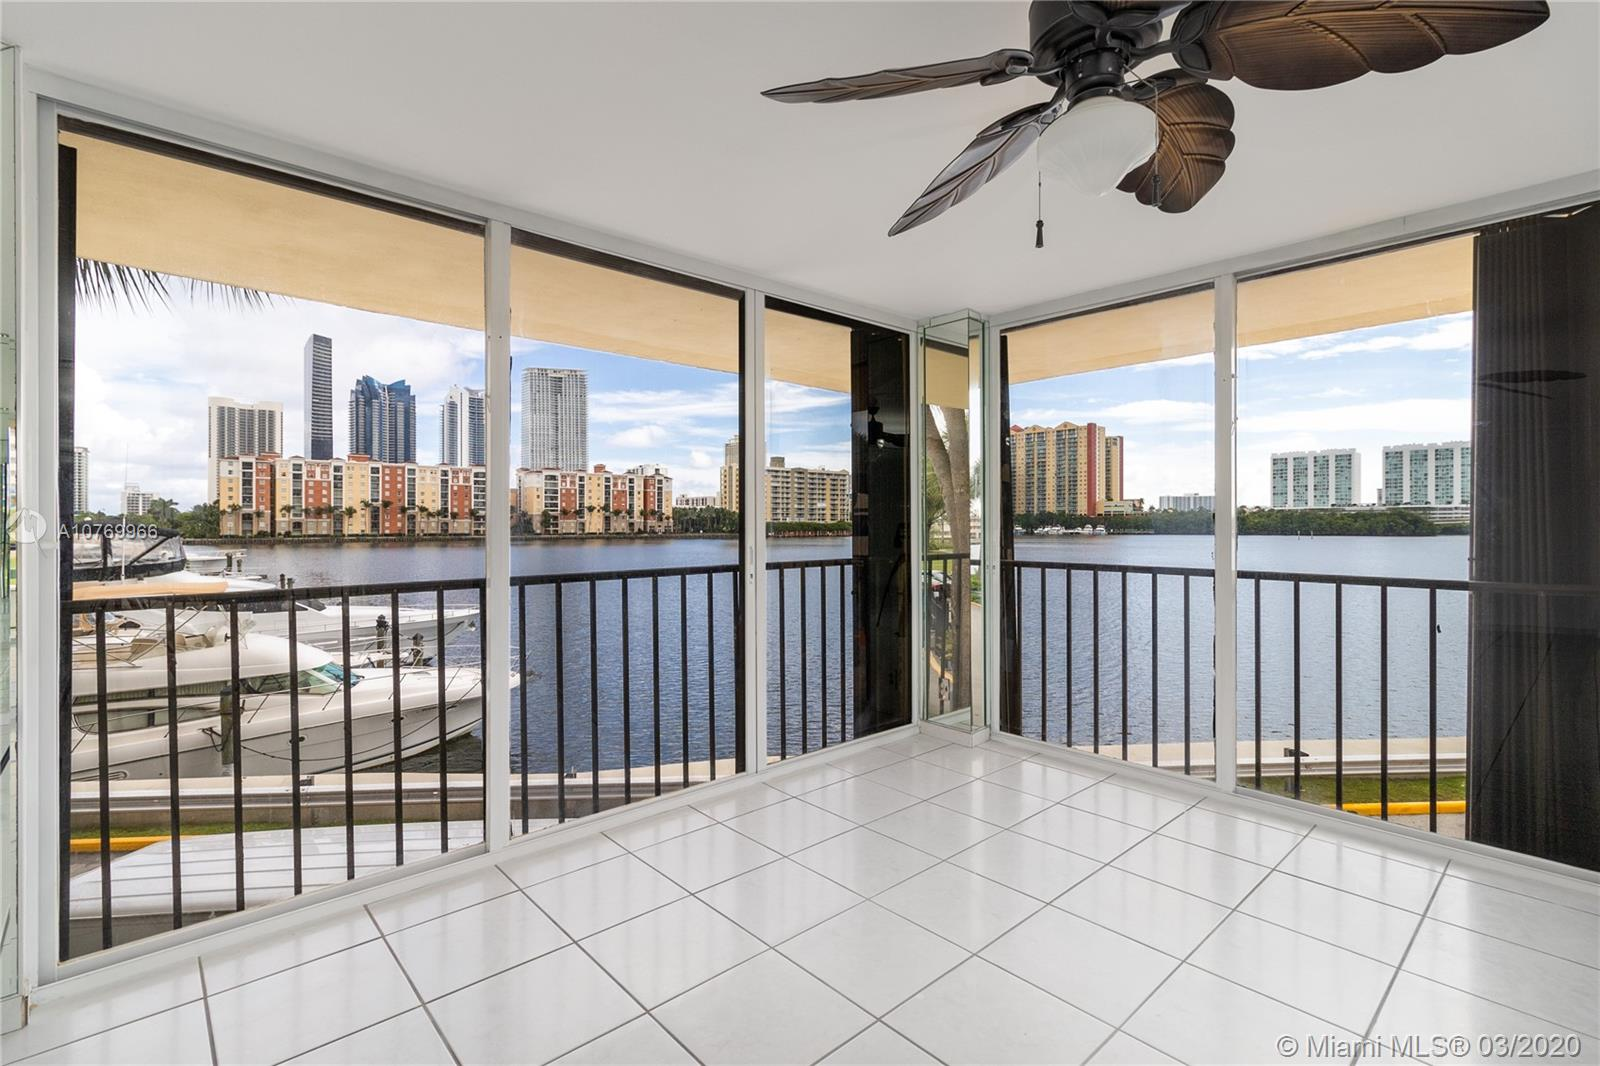 Winston Tower 700 #M19 - 290 174th St #M19, Sunny Isles Beach, FL 33160